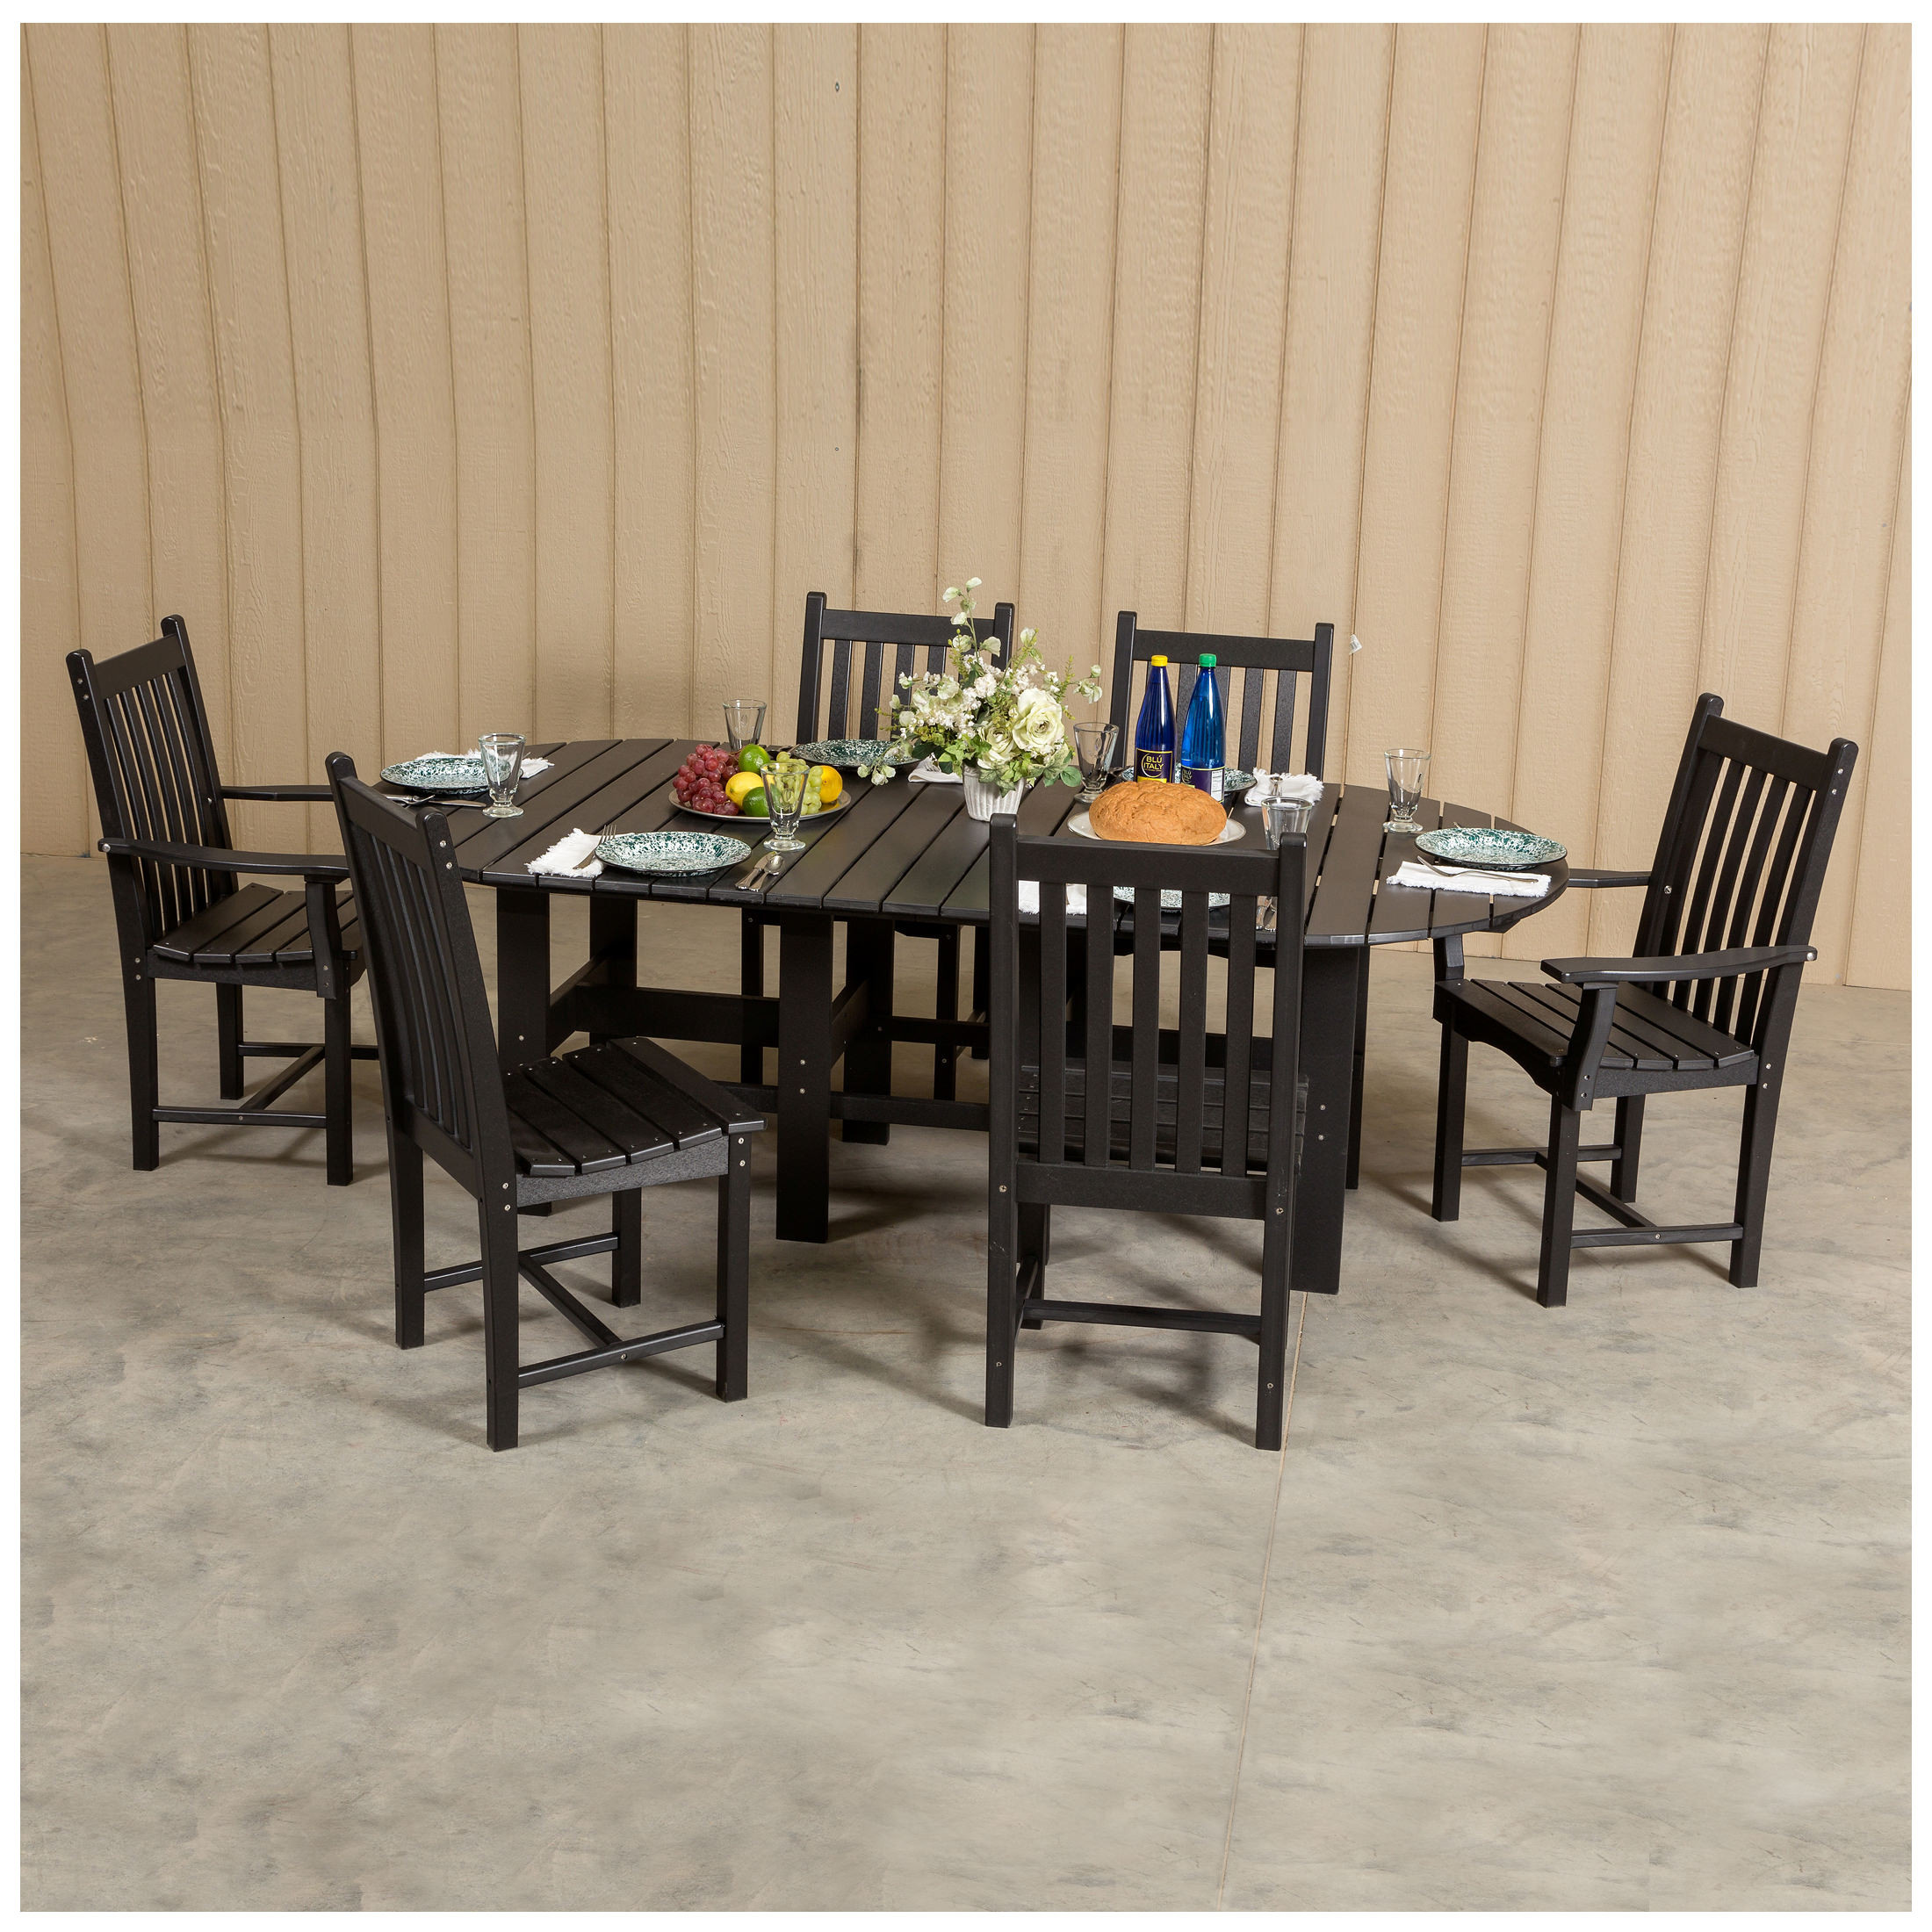 Little Cottage LCC-292 Classic Table Set